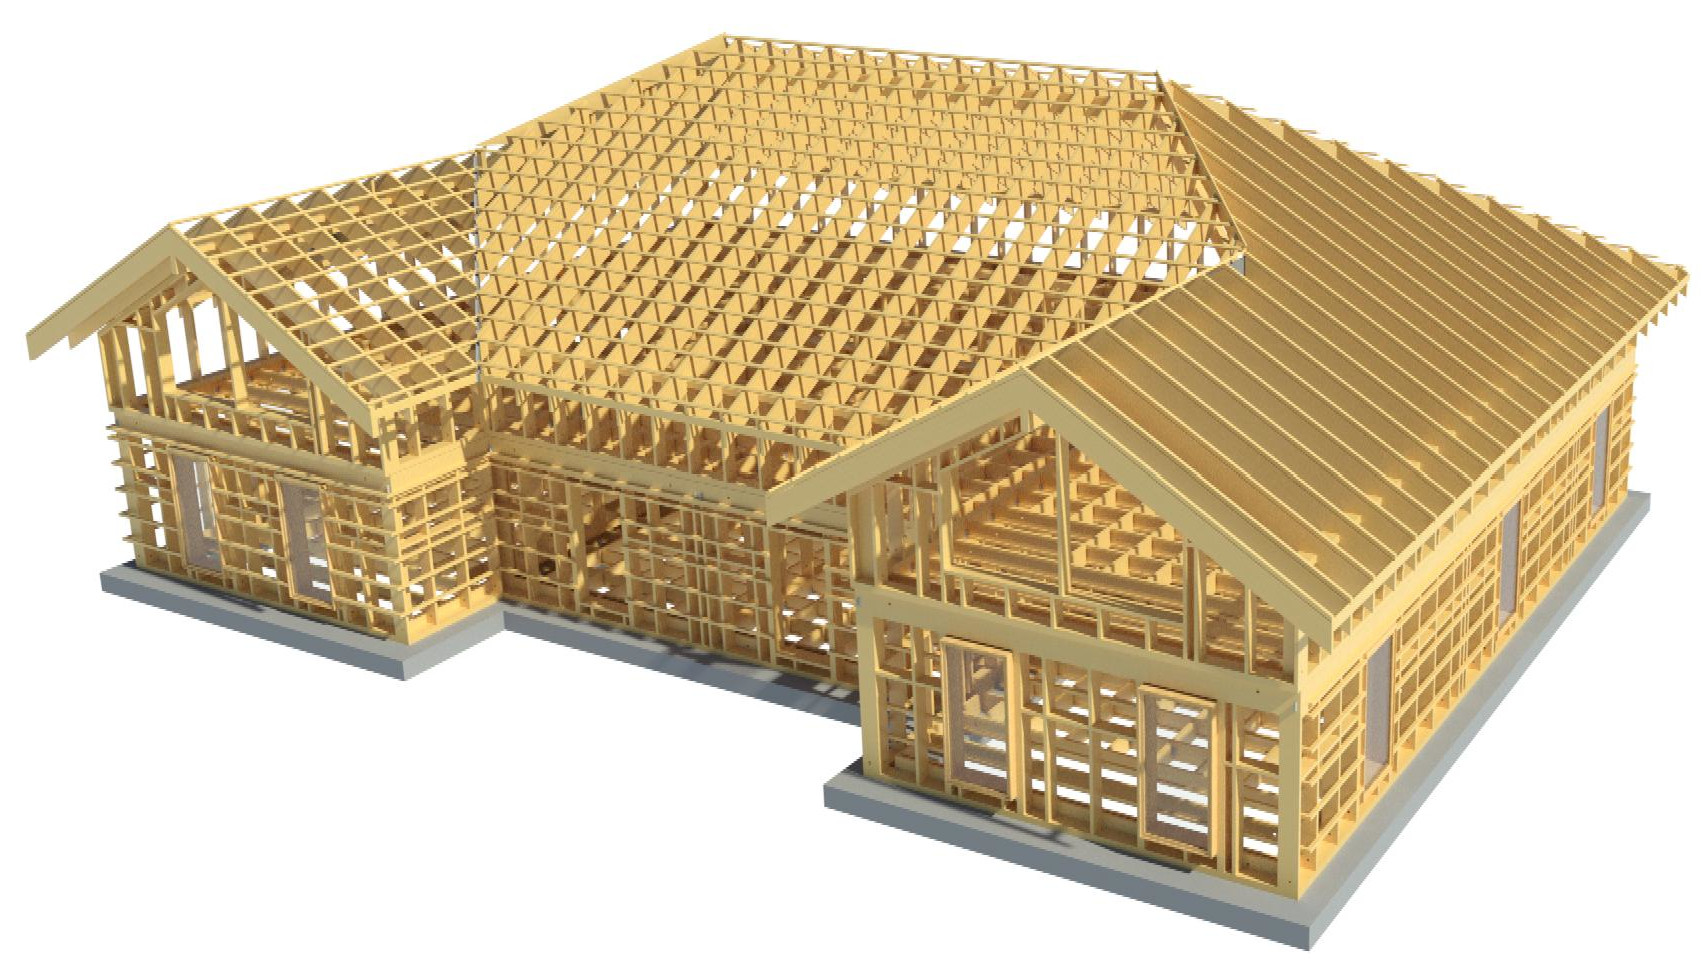 timber framed house in Autodesk Revit using AGACAD Wood Framing Suite BIM design software